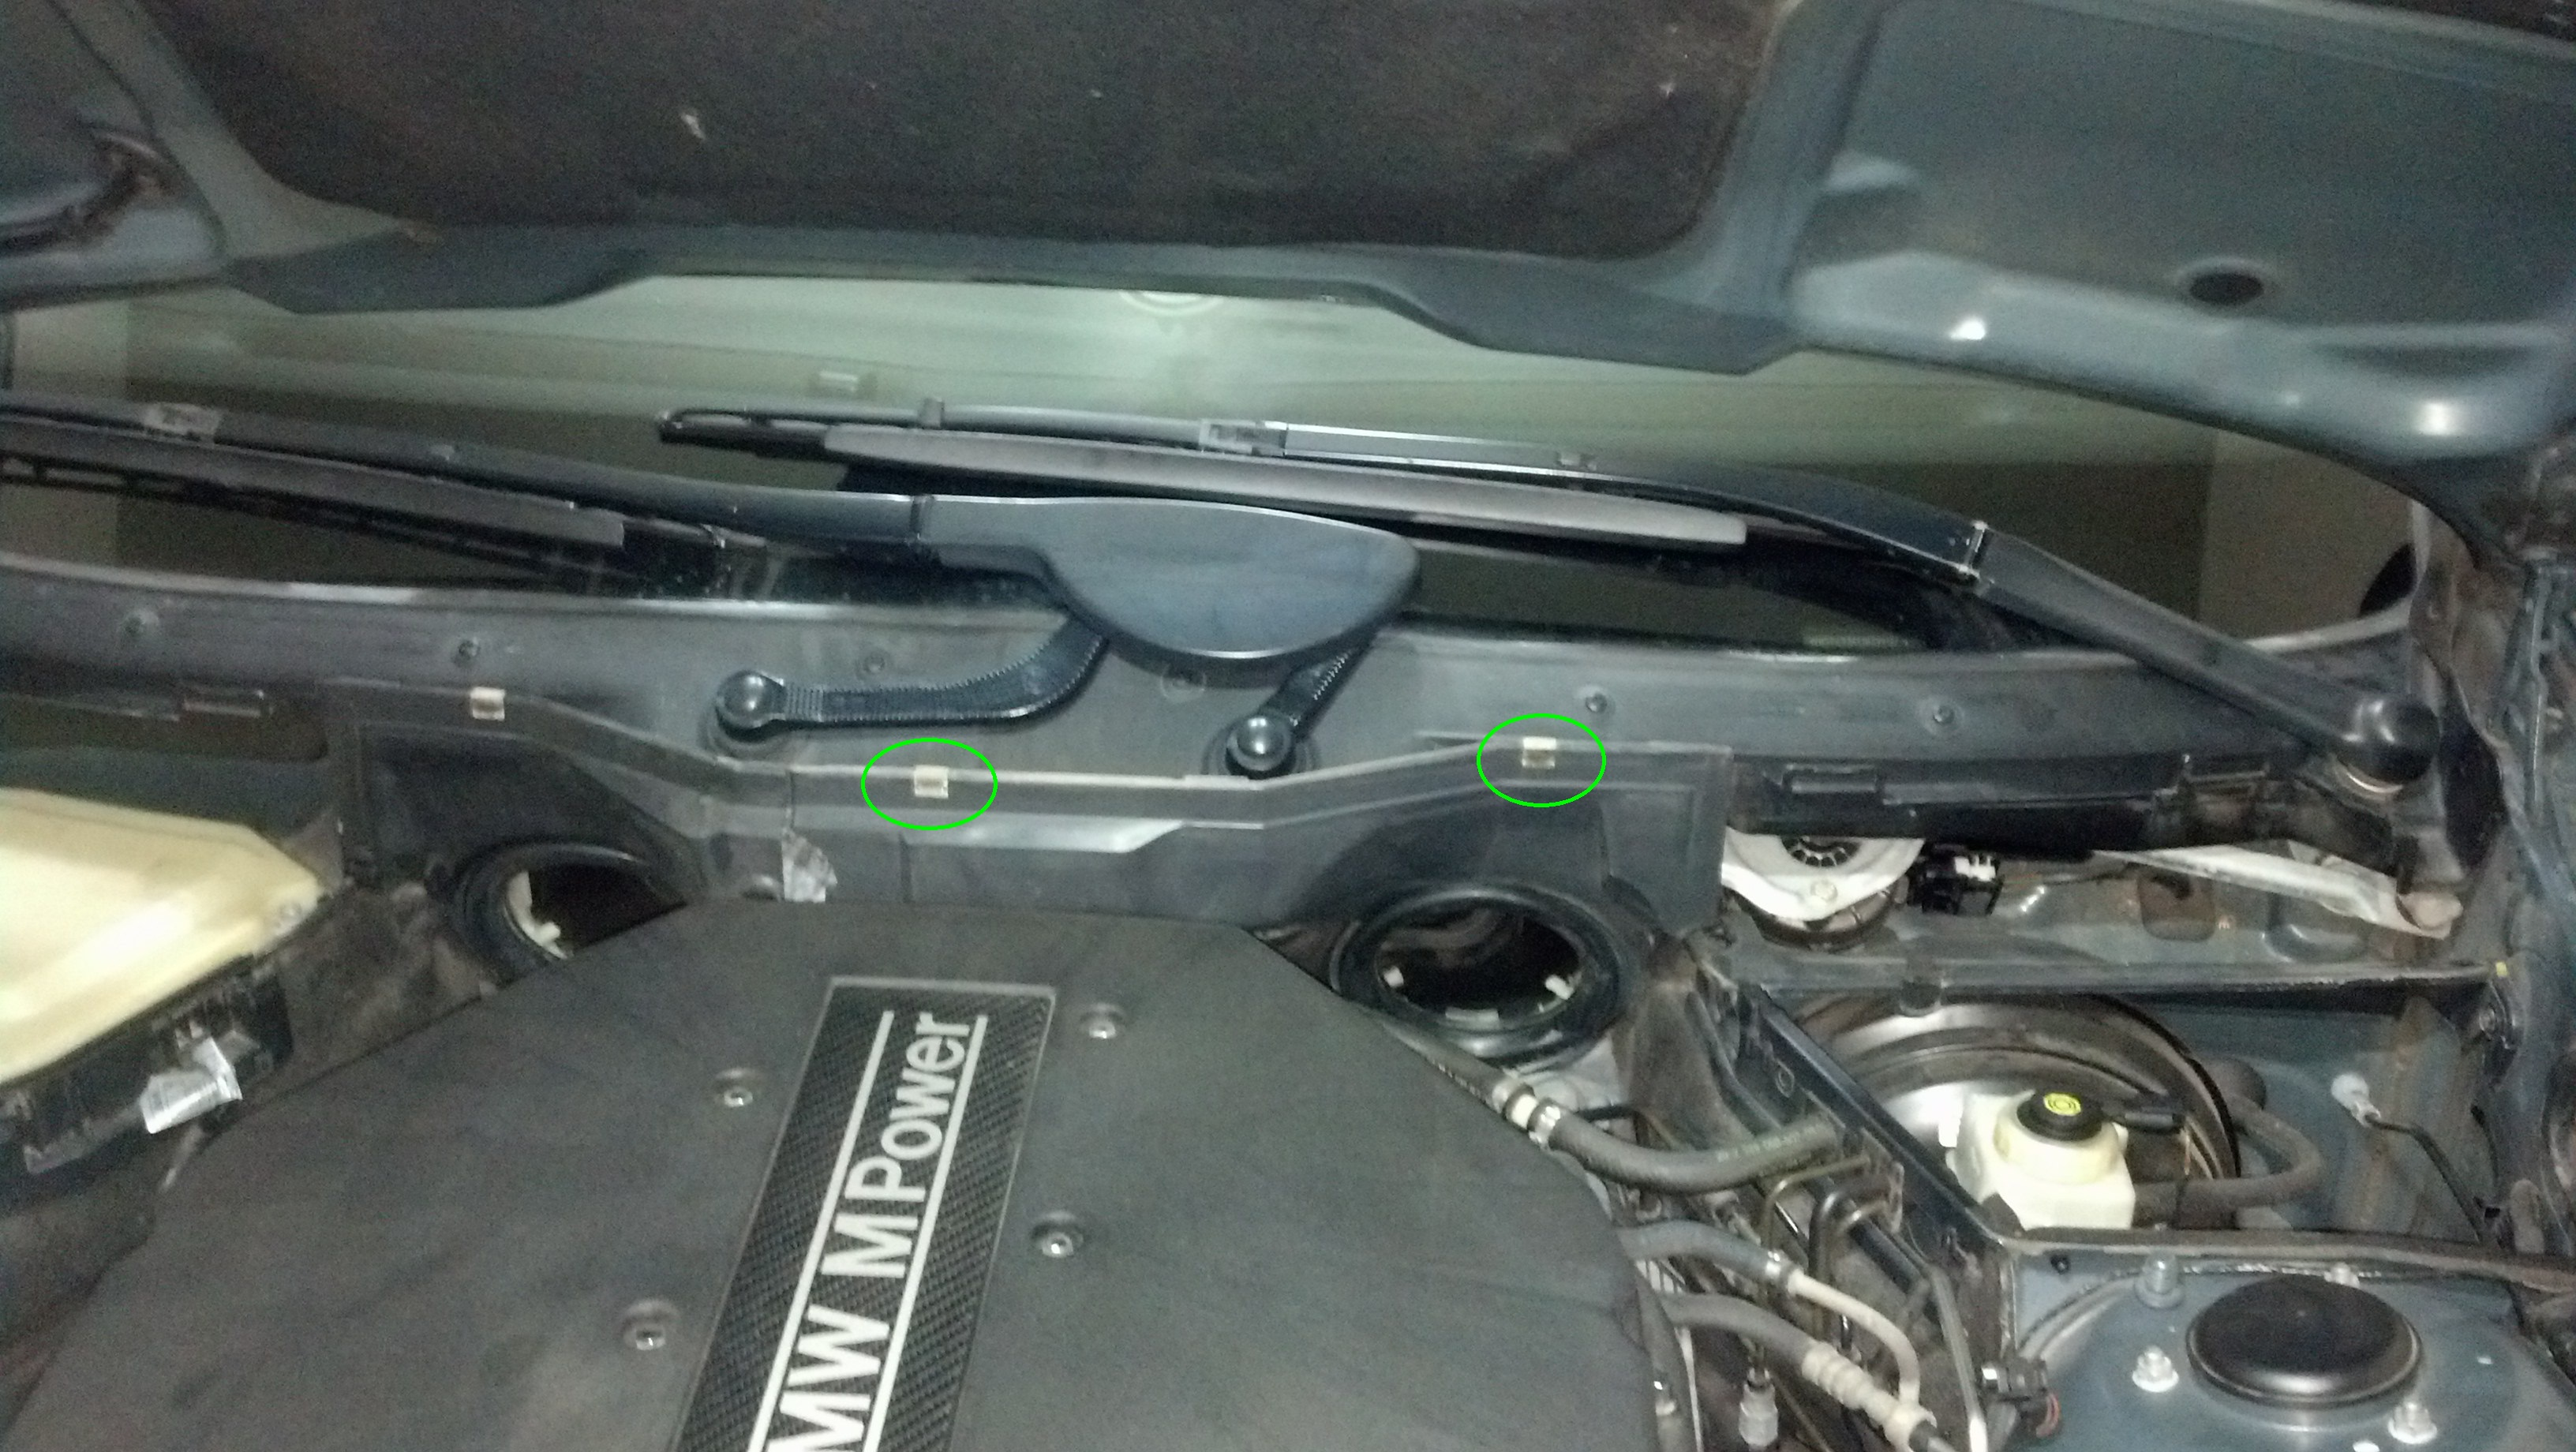 E39 - Replacement of the Left and Right Firewall Covers-img_20131130_191055_388b.jpg